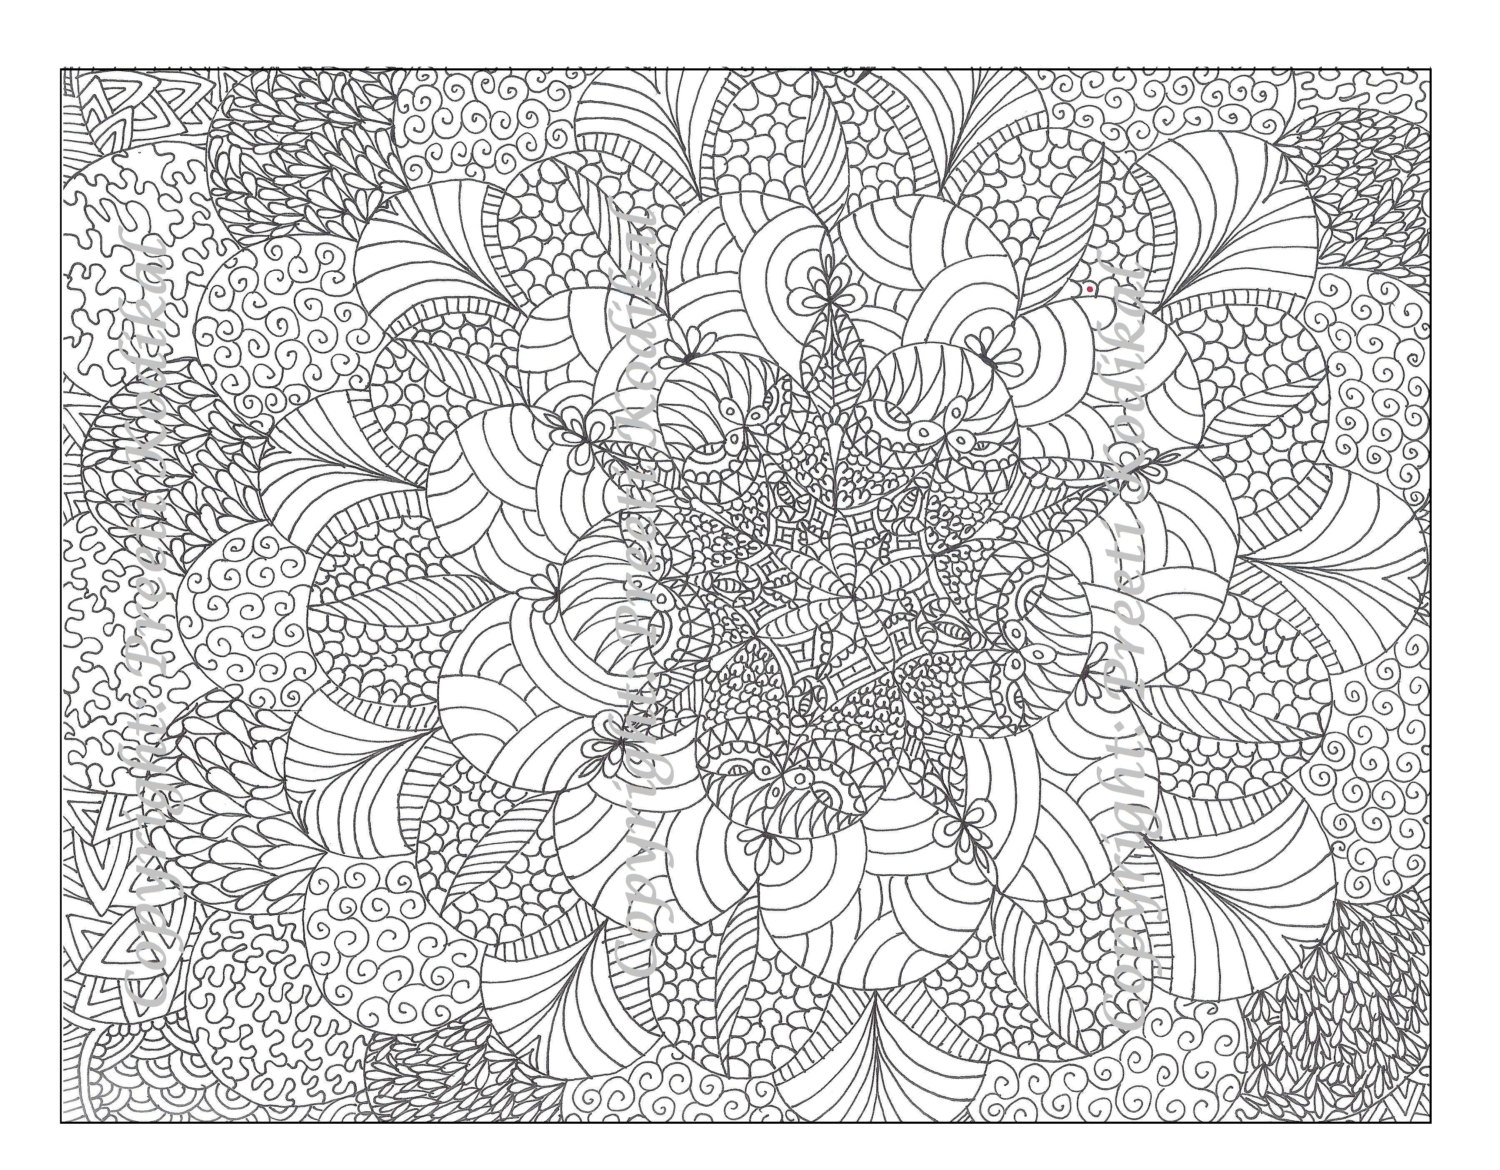 Coloring pages patterns - Updated